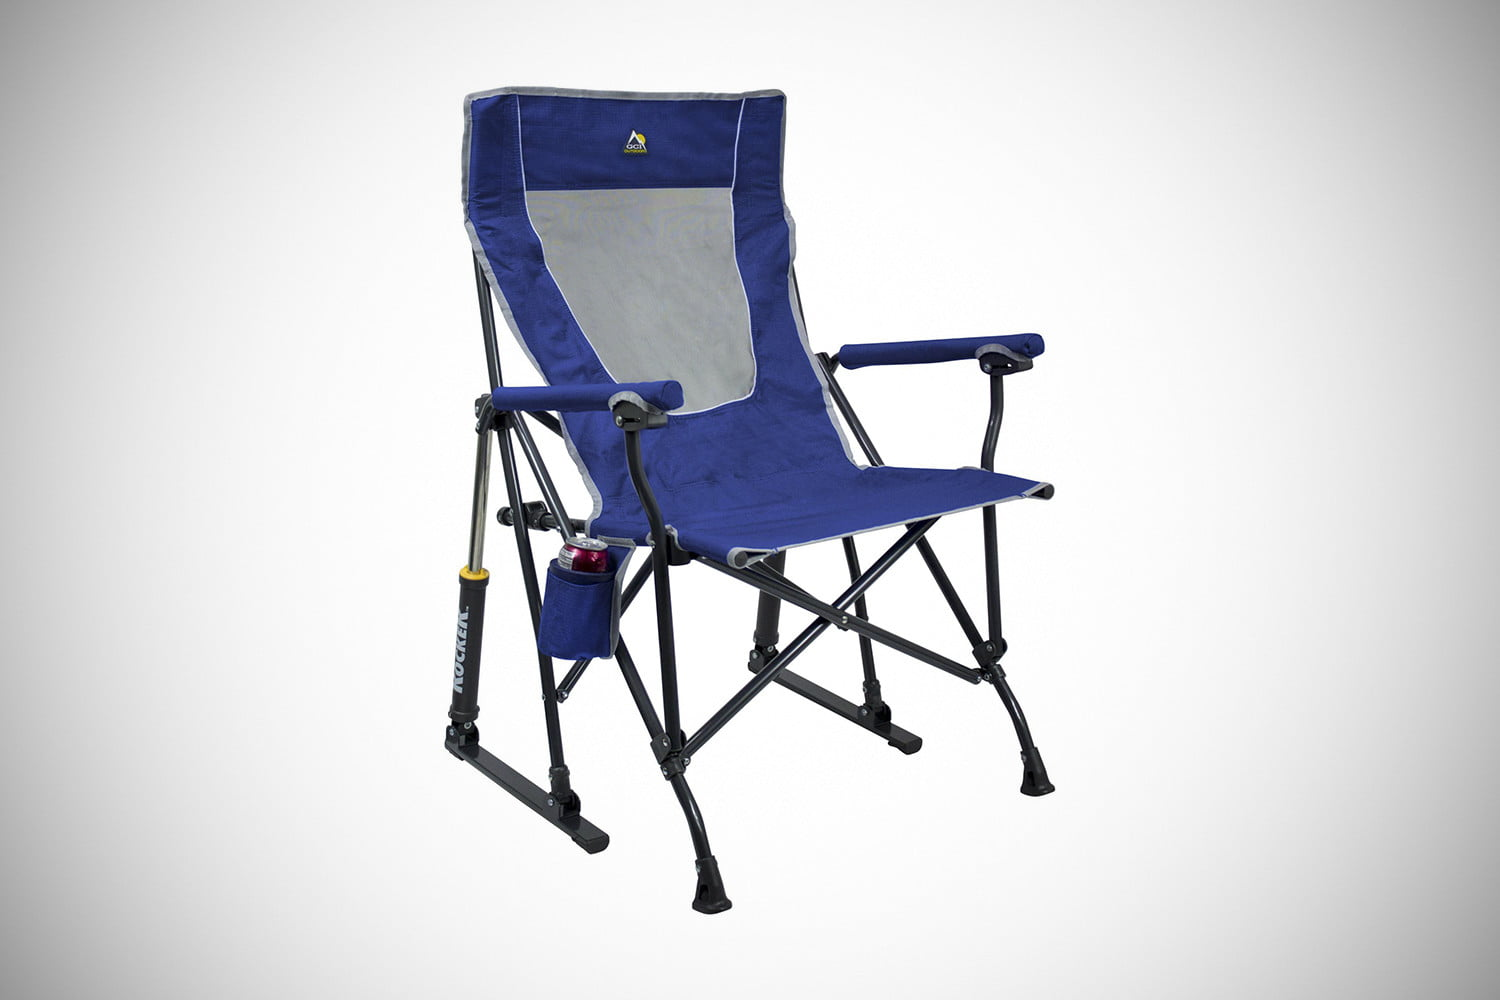 Strange The Best Camping Chairs For 2019 Digital Trends Gmtry Best Dining Table And Chair Ideas Images Gmtryco